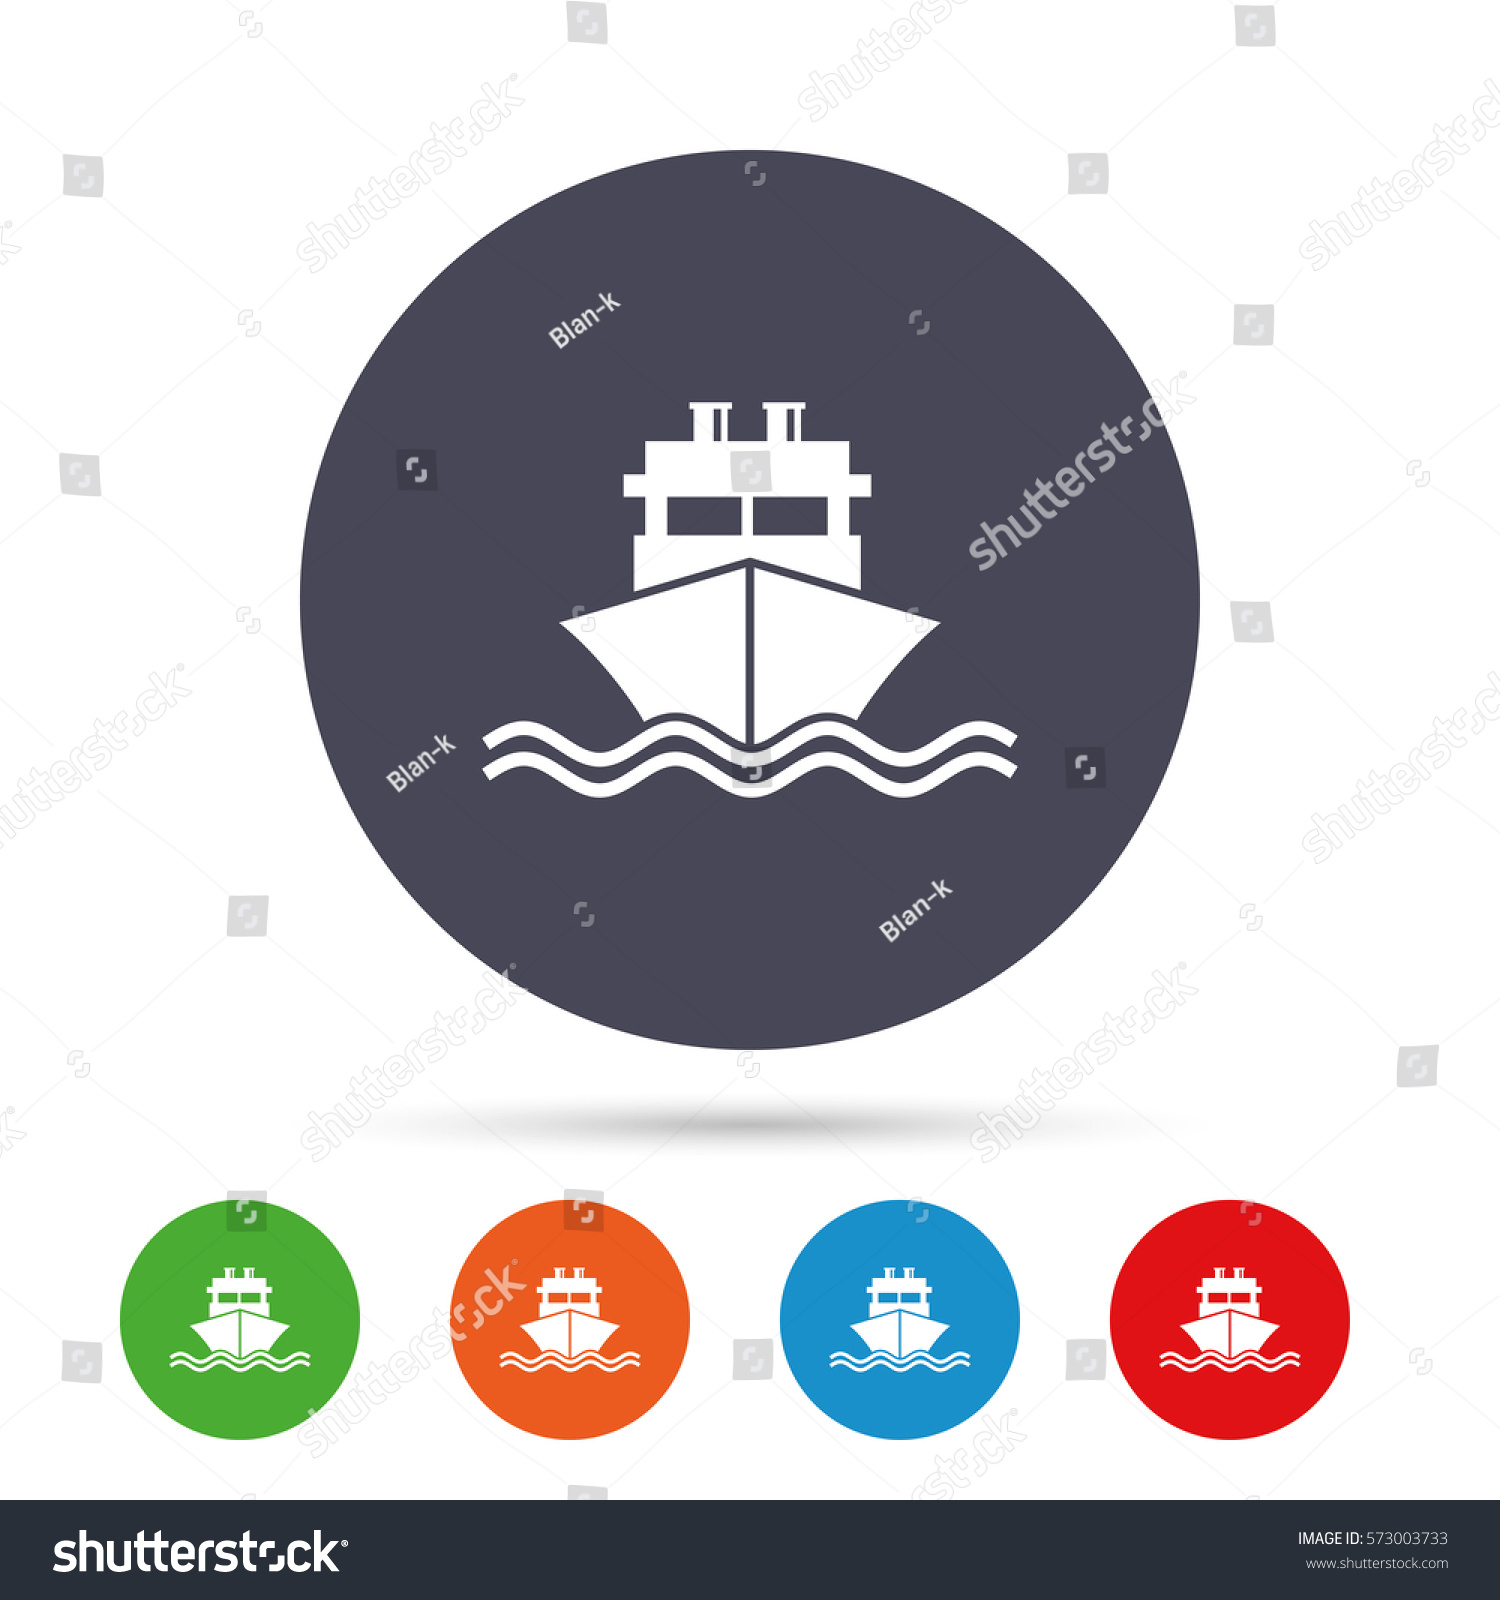 Ship boat sign icon shipping delivery stock vector 573003733 ship or boat sign icon shipping delivery symbol with chimneys or pipes round buycottarizona